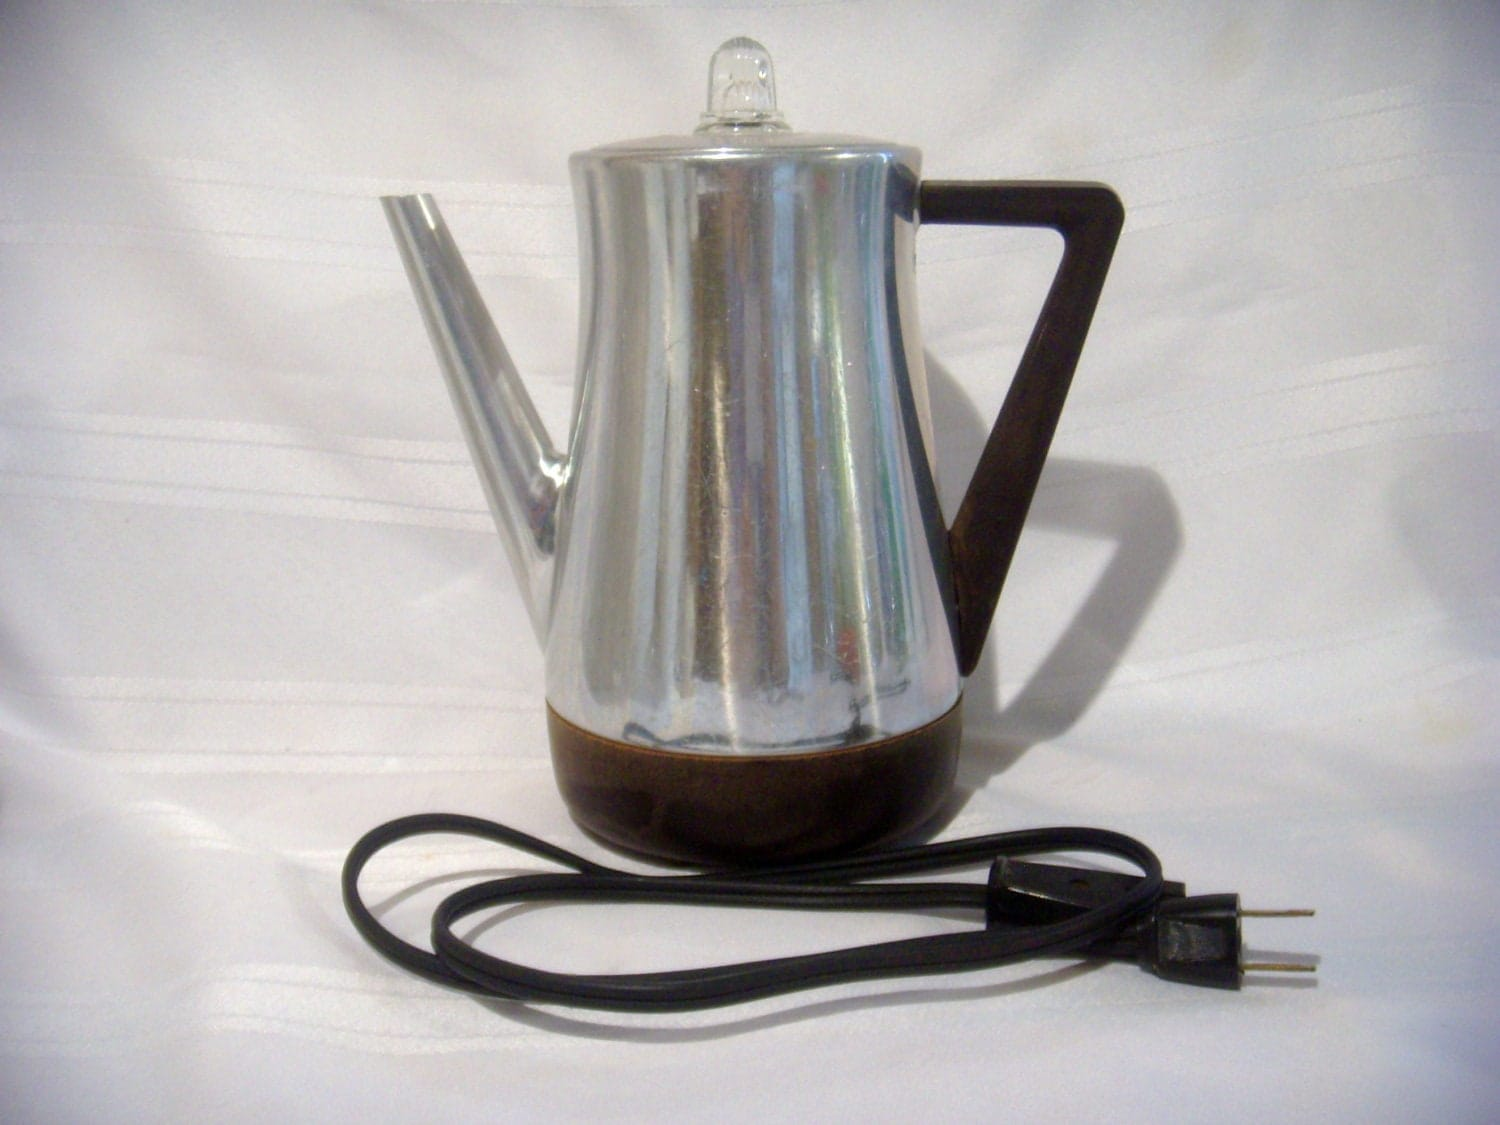 West Bend Coffee Maker Percolator : Vintage West Bend Flavo-Matic Coffee Pot Percolator from the